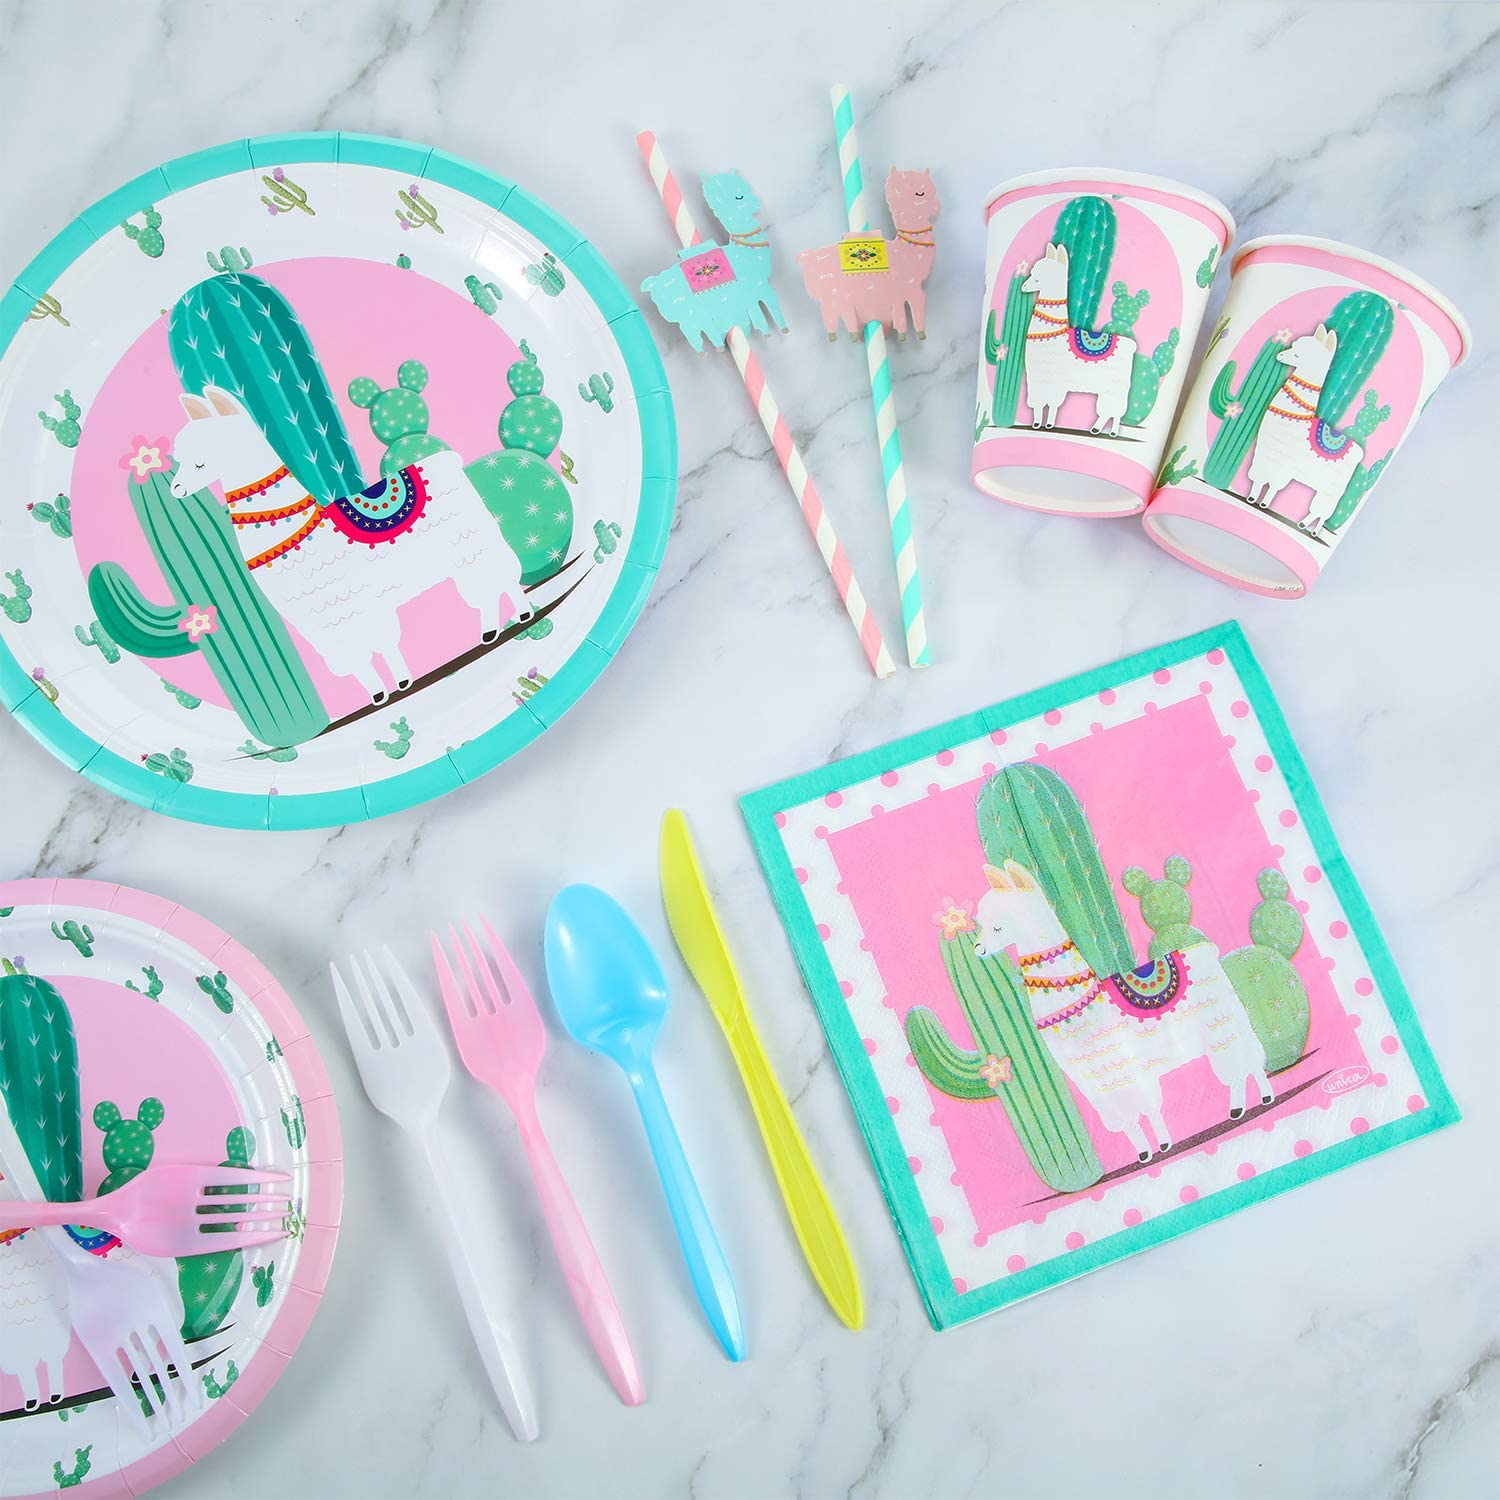 for Llama Fiesta Birthday Baby Shower Party Favors Cactus Forks 116 Pieces Llama Party Supplies Disposable Llama Tableware Set-Serves 16 Guests-Plates Knives Straws and Napkins Spoons Cups